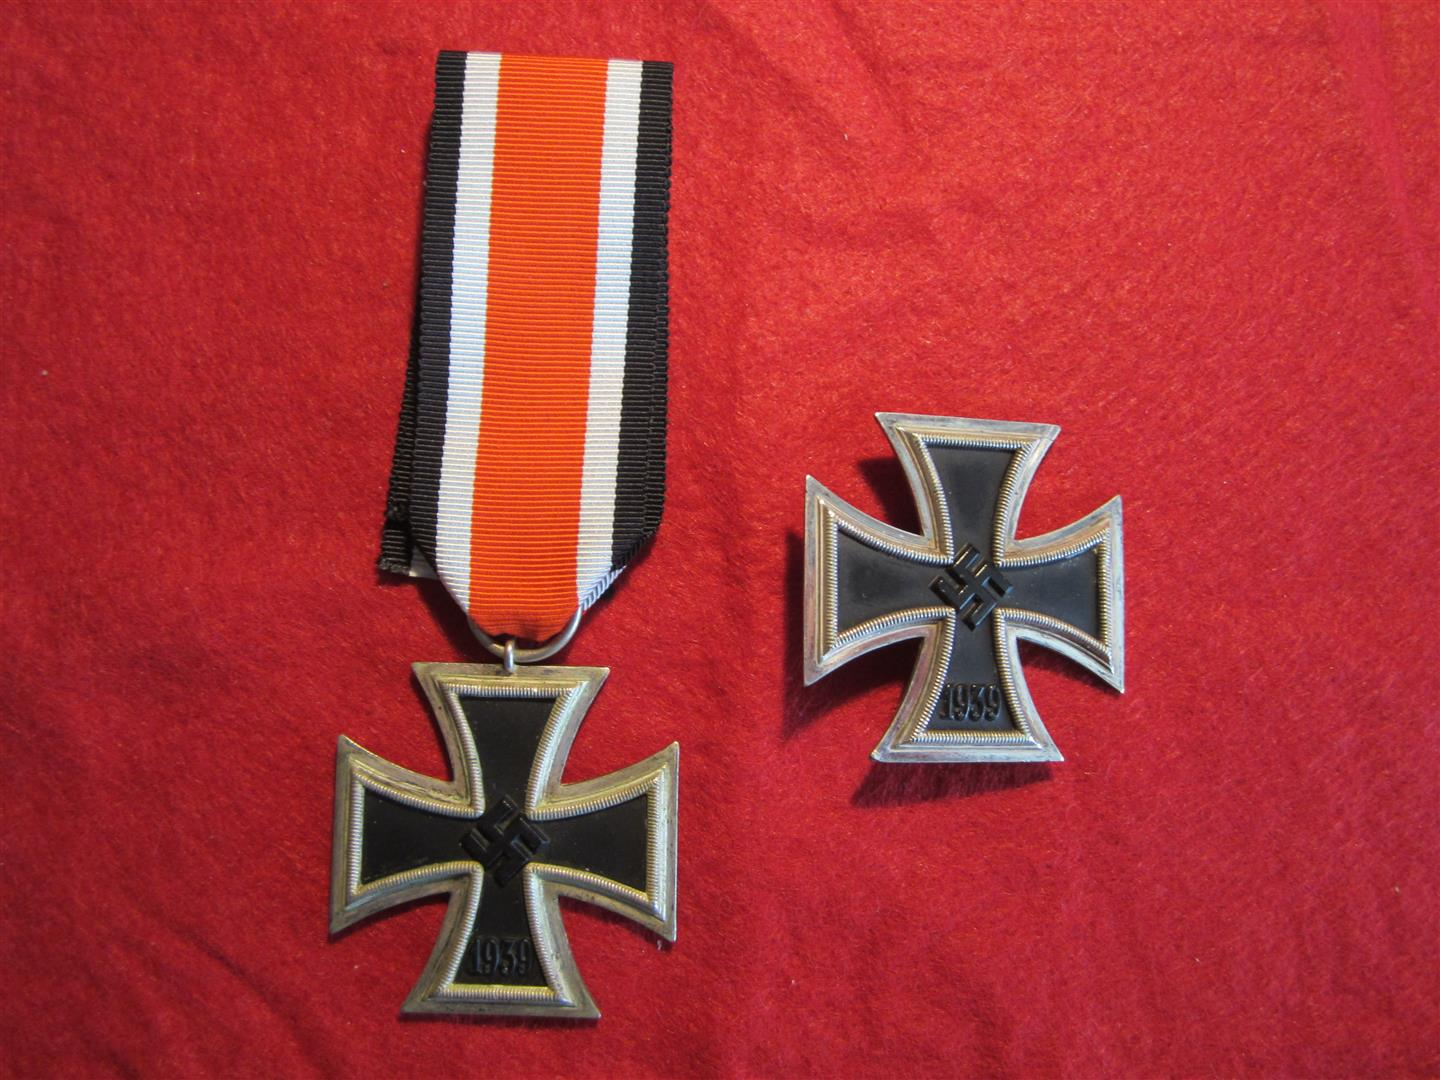 WW2 German Iron Crosses